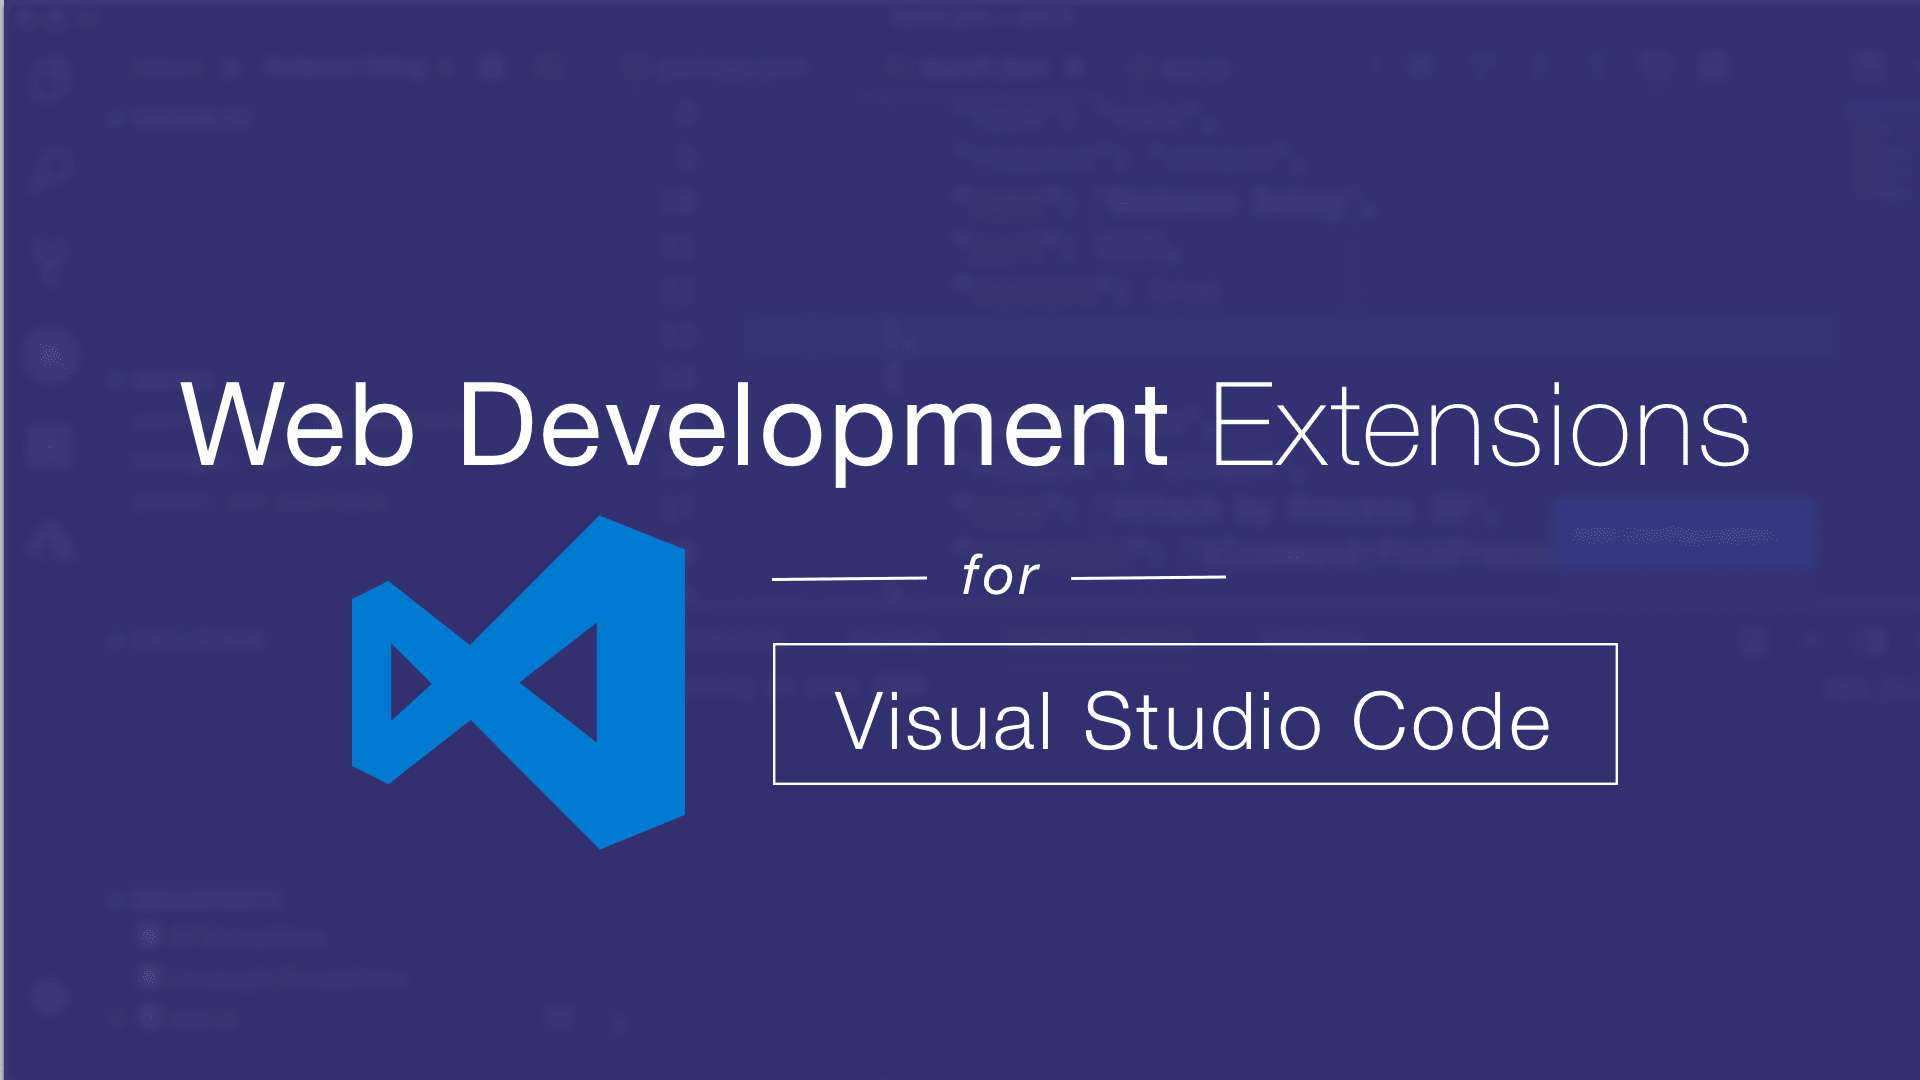 22 Best Visual Studio Code Extensions for Web Development